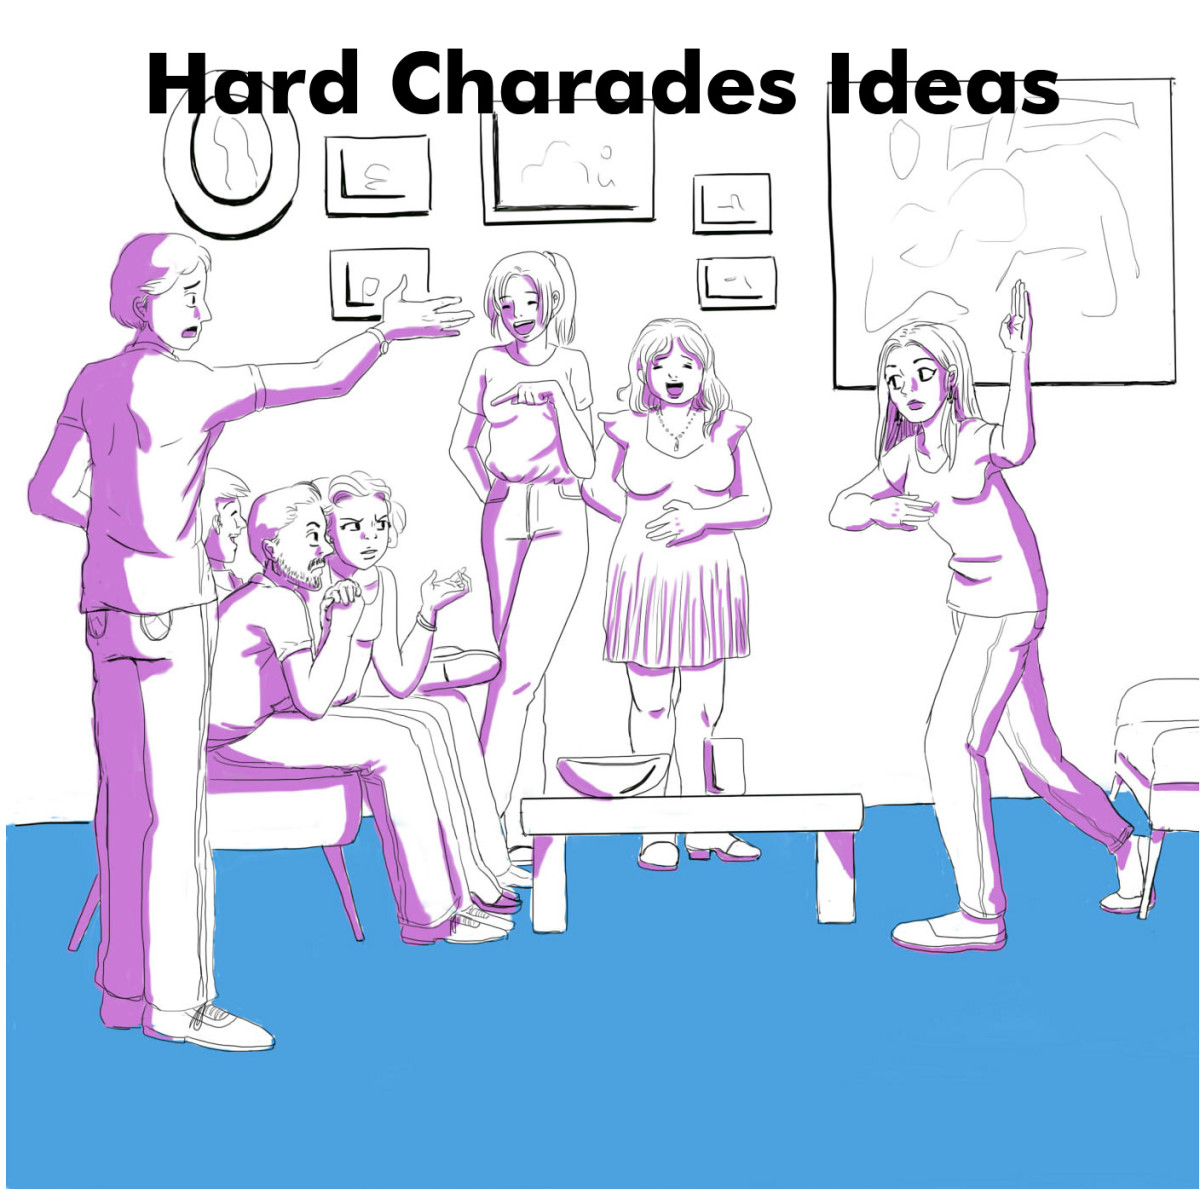 Hard Charades Ideas—Movies, TV Shows, Books, and More